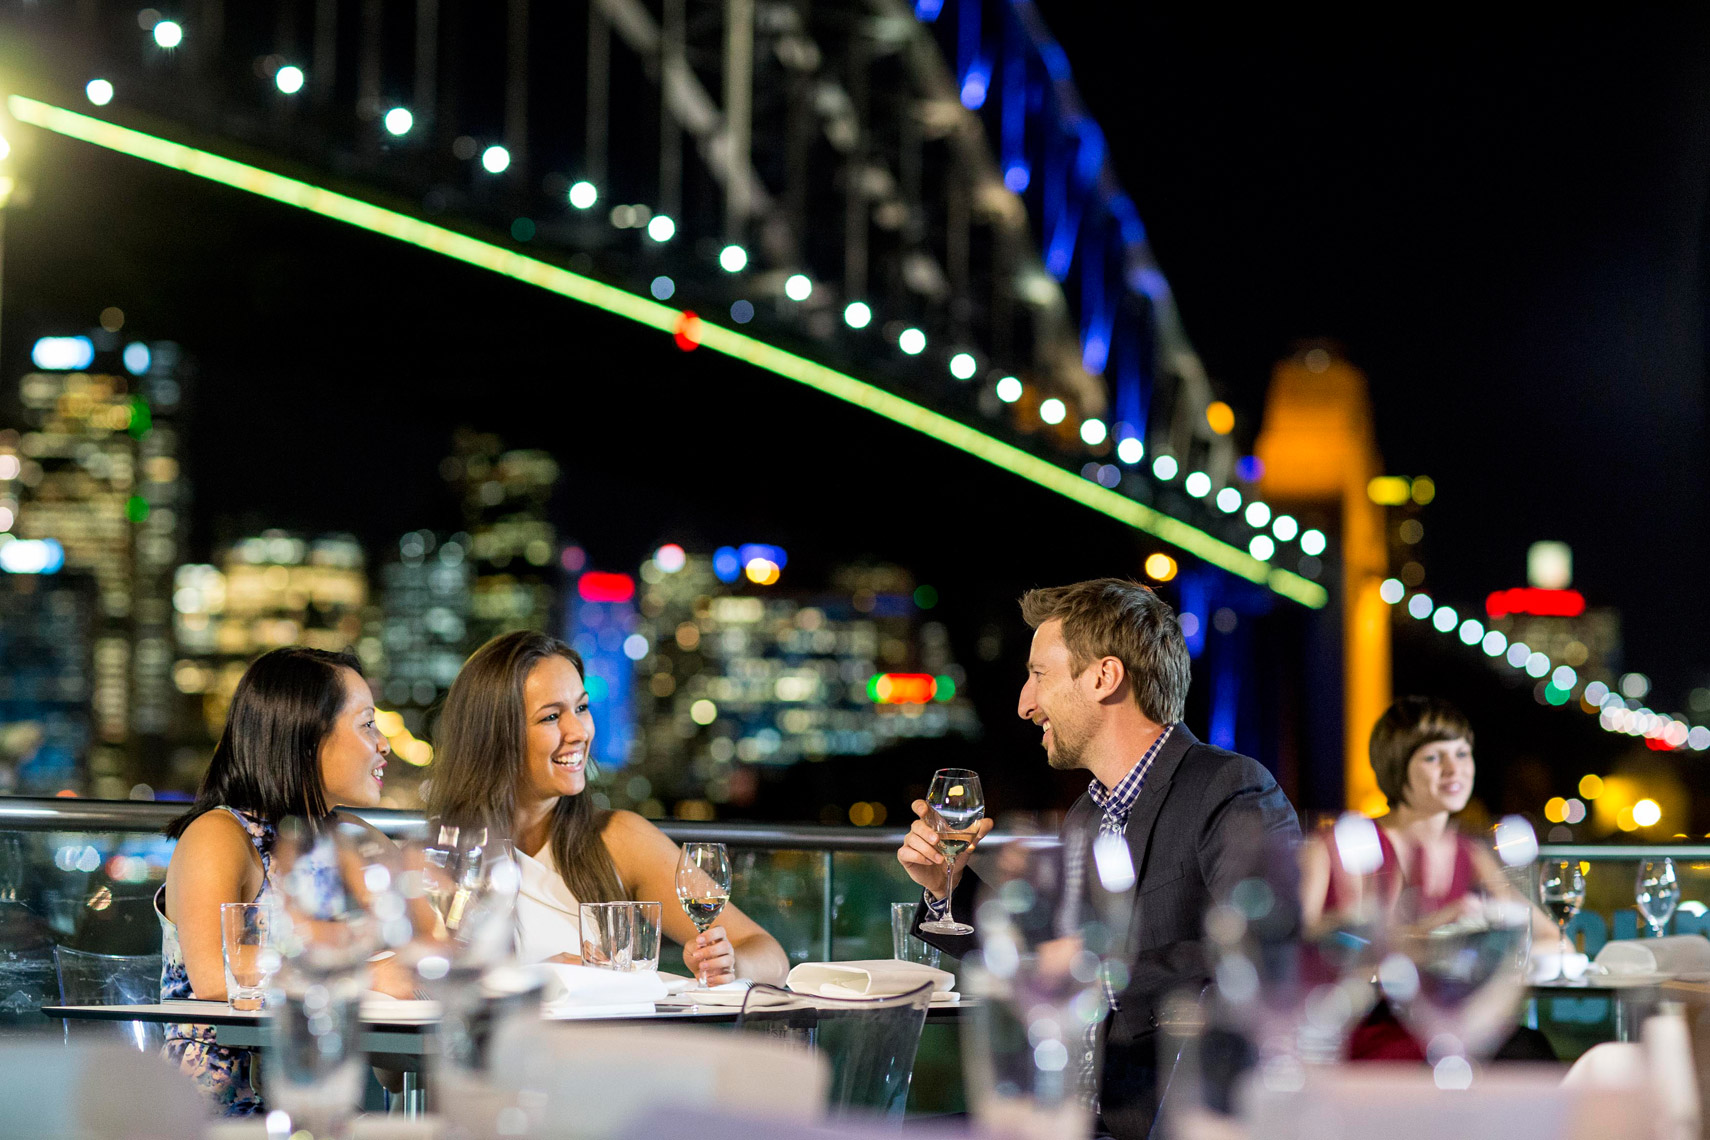 Vivid-Sydney-2014_Aqua-Dining_North-Sydney_James-Horan_DNSW_006